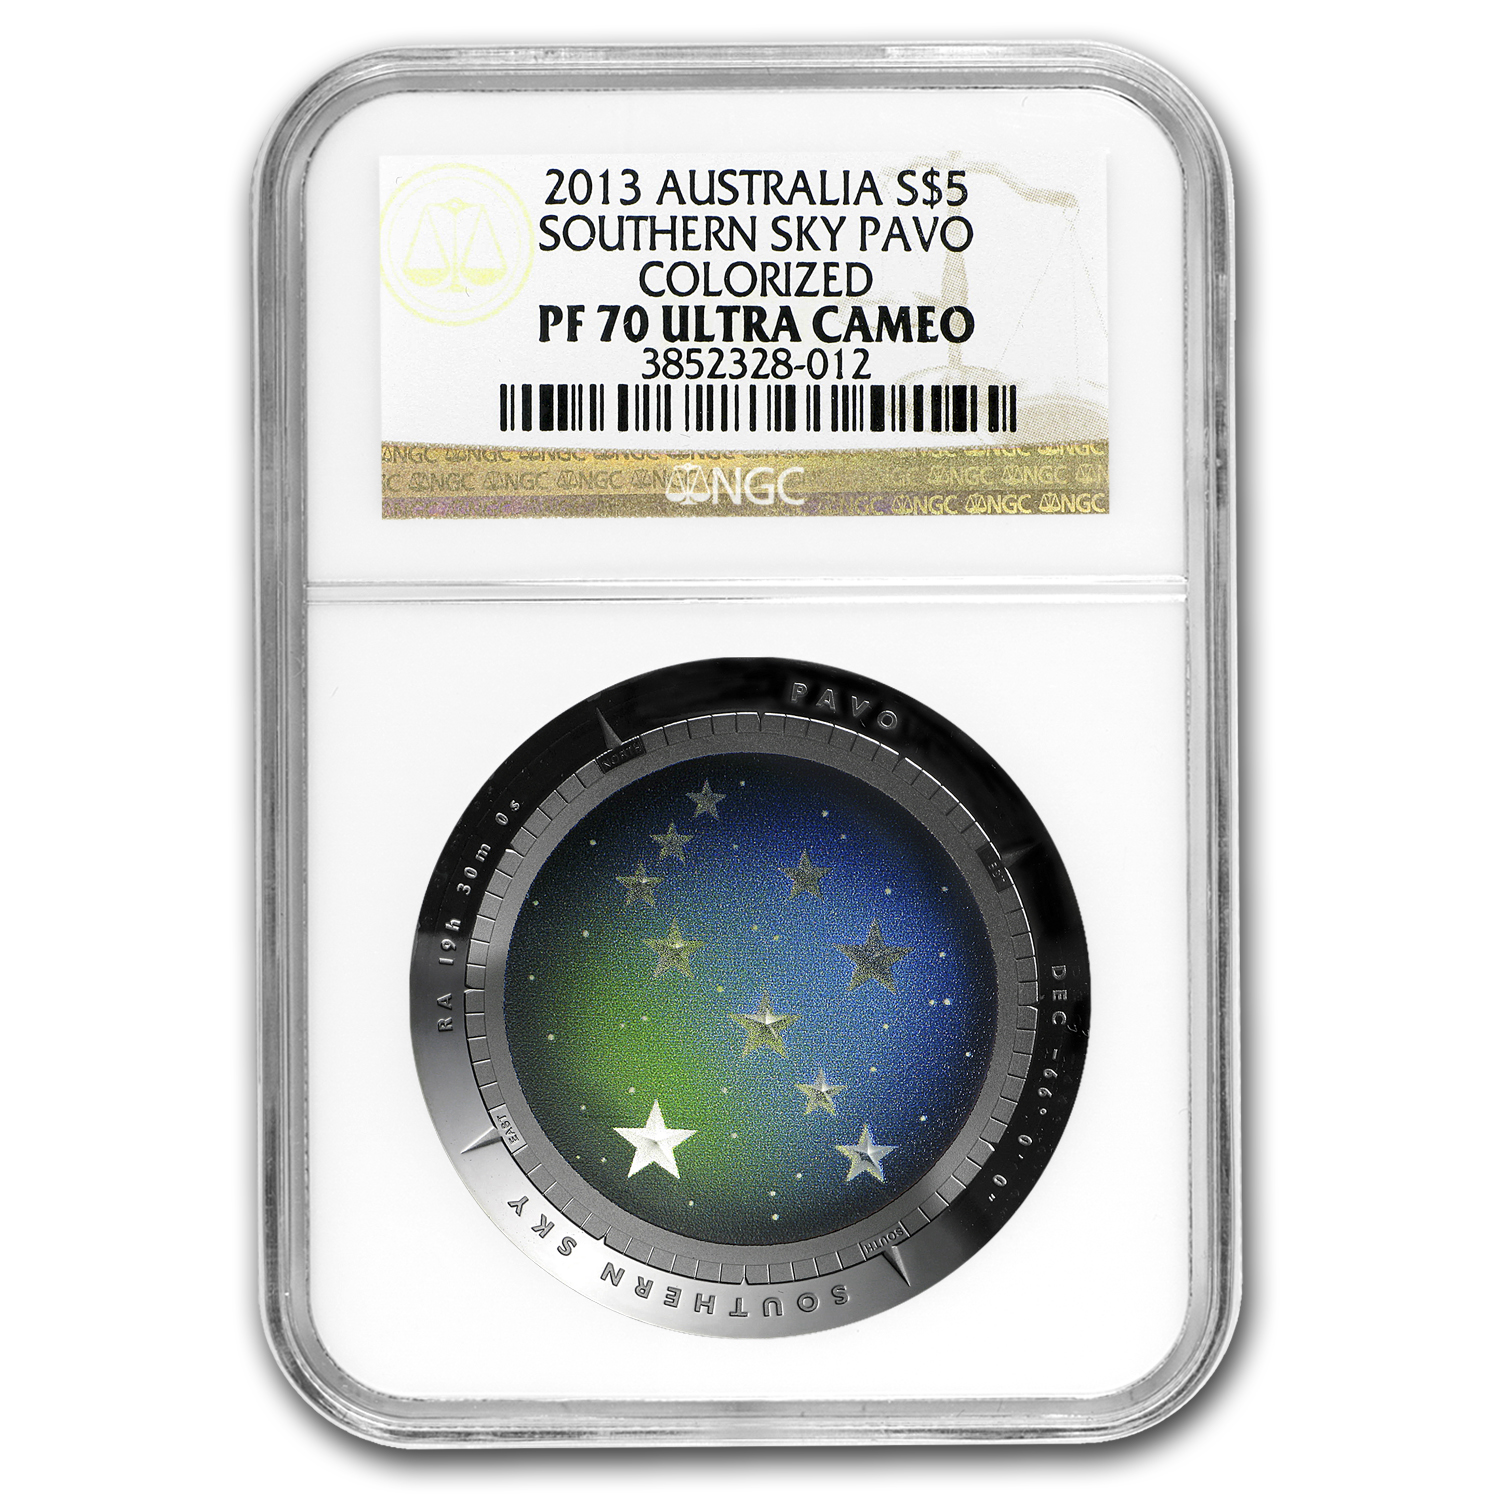 2012-2014 Australia Silver $5 Color Domed Southern Sky Set PF-70